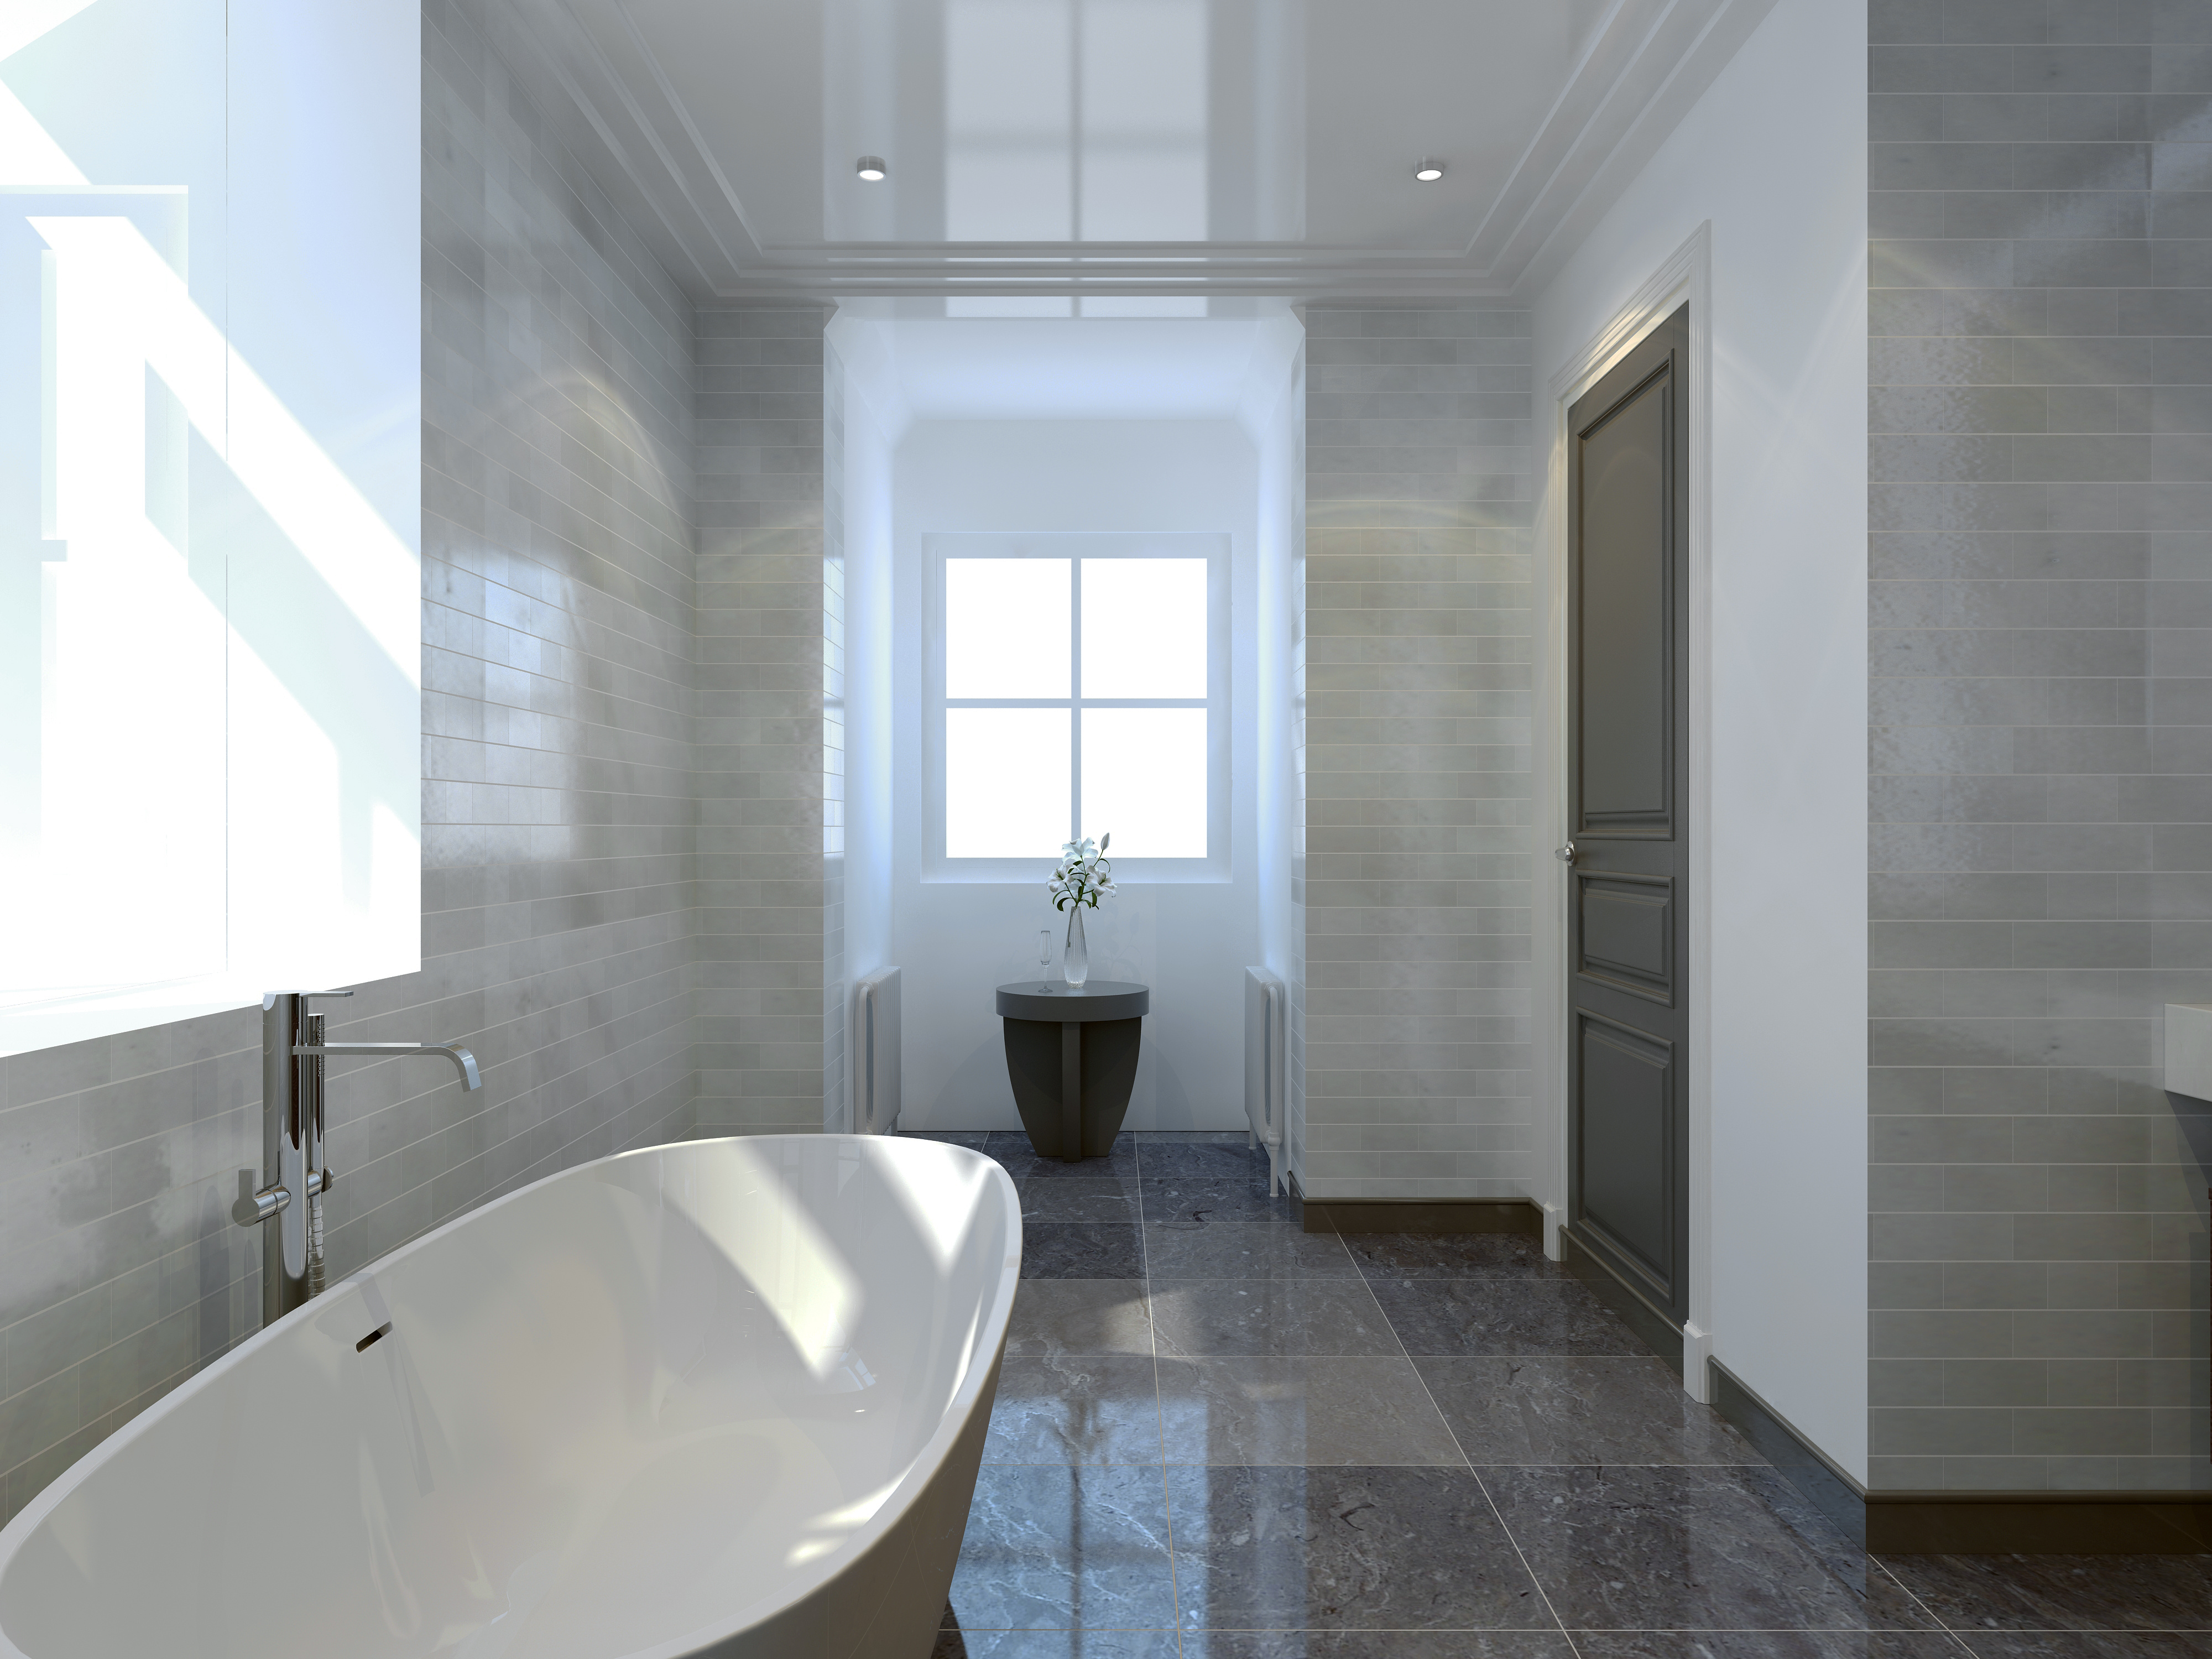 Top Bathroom Renovation Trends of 2018